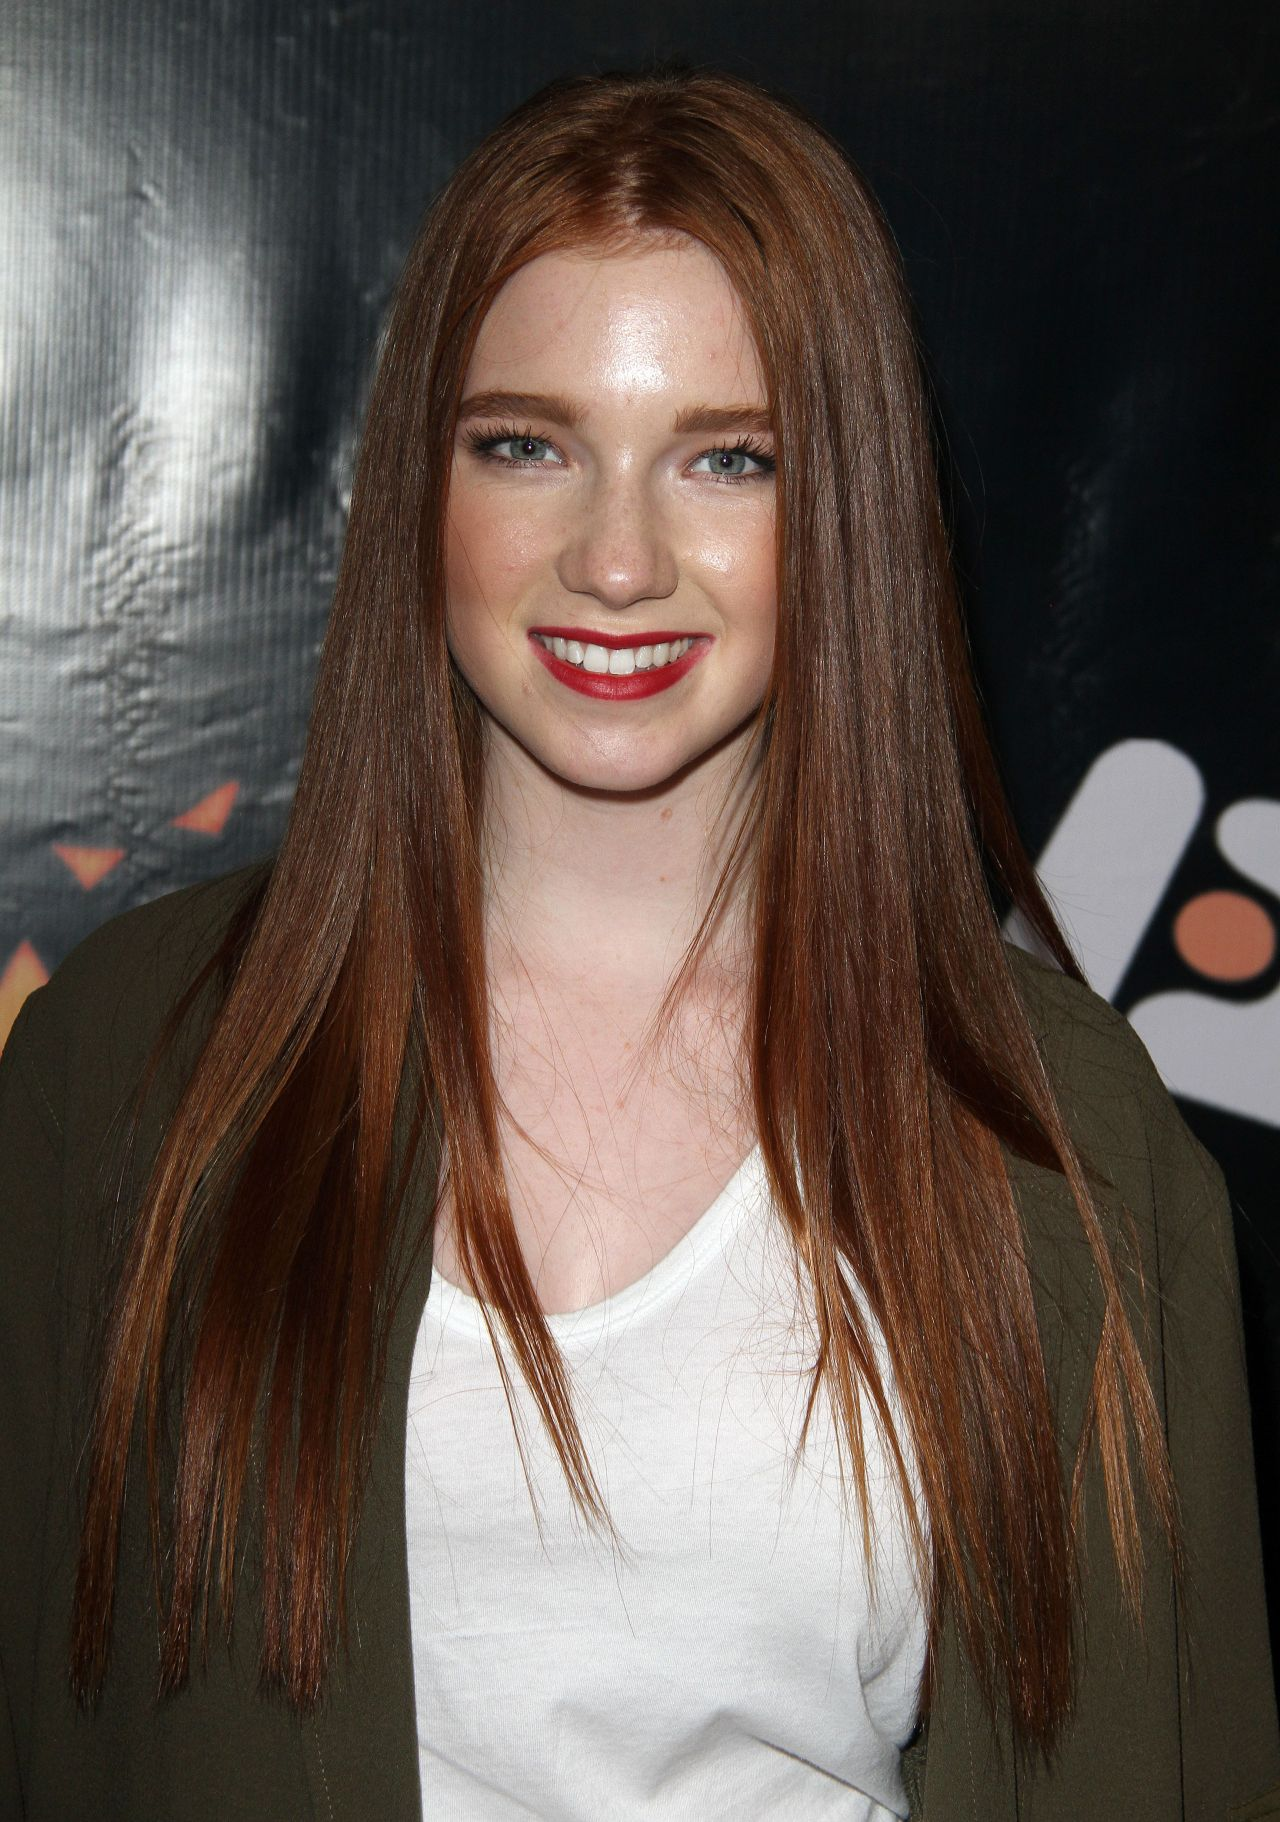 annalise basso schoolannalise basso 2016, annalise basso gif, annalise basso vk, annalise basso wallpaper, annalise basso insta, annalise basso reddit, annalise basso lie to me, annalise basso kissing, annalise basso height, annalise basso bio, annalise basso captain fantastic, annalise basso instagram, annalise basso school, annalise basso photo, annalise basso desperate housewives